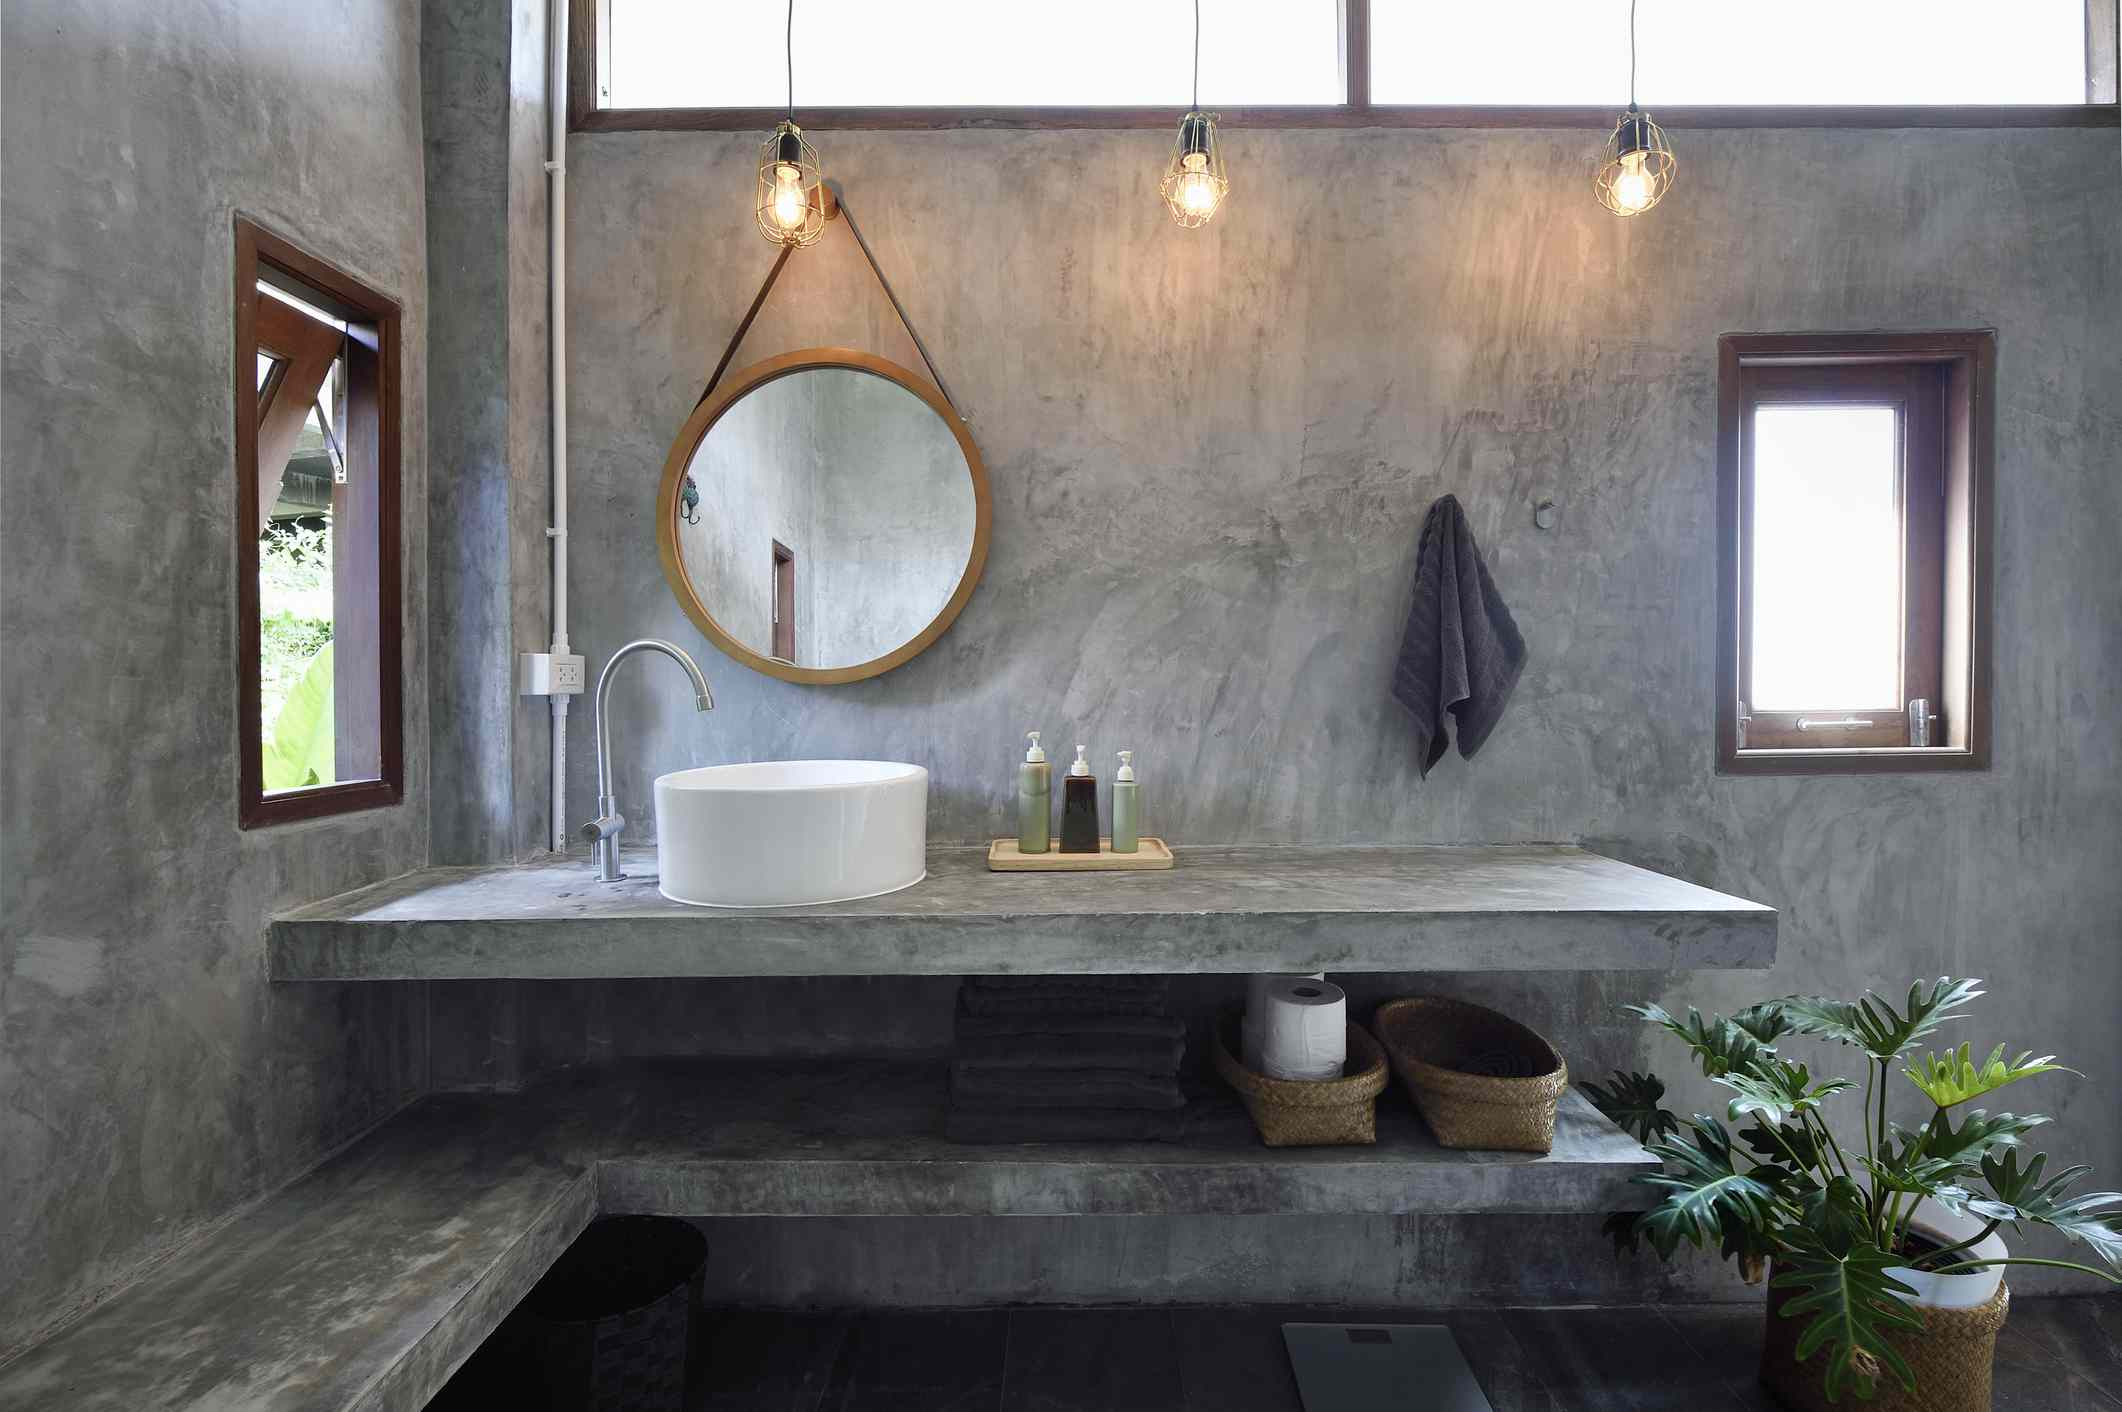 Concrete bathroom with hanging bulb lights